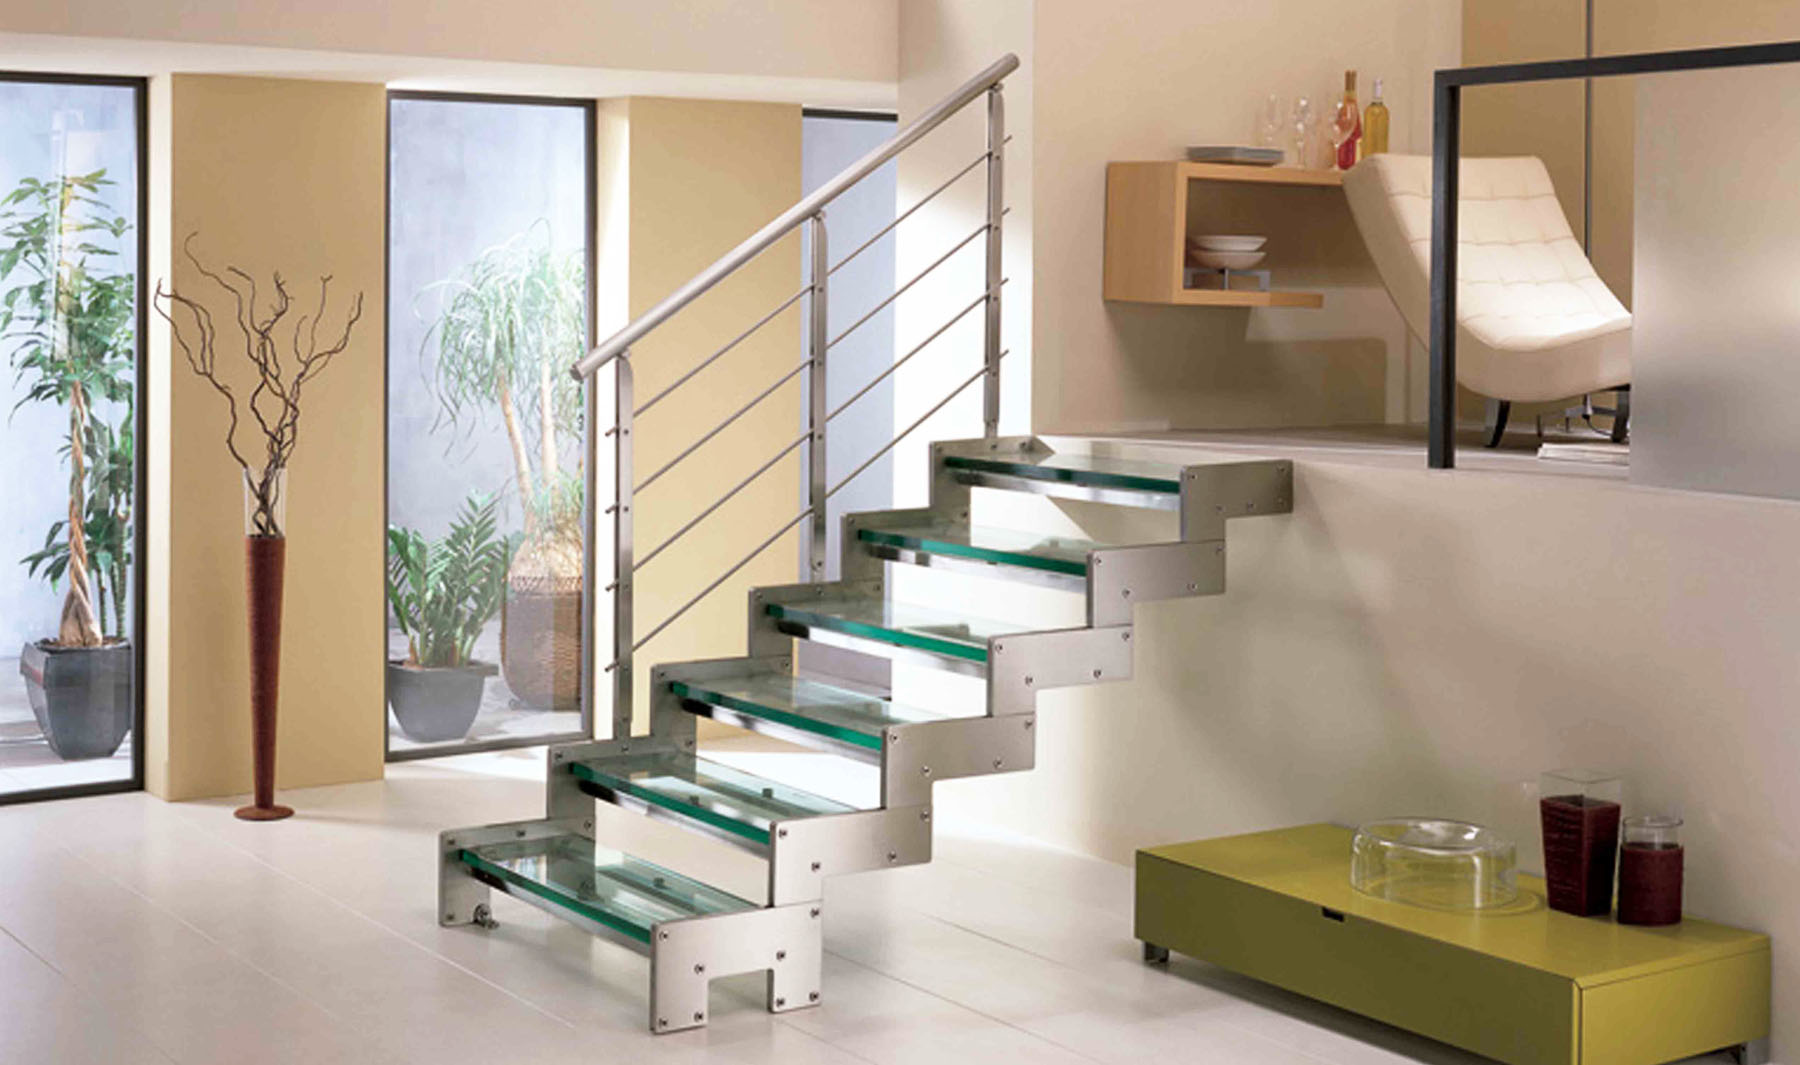 Escaleras construcci n reformas decoraci n for Escaleras de duplex